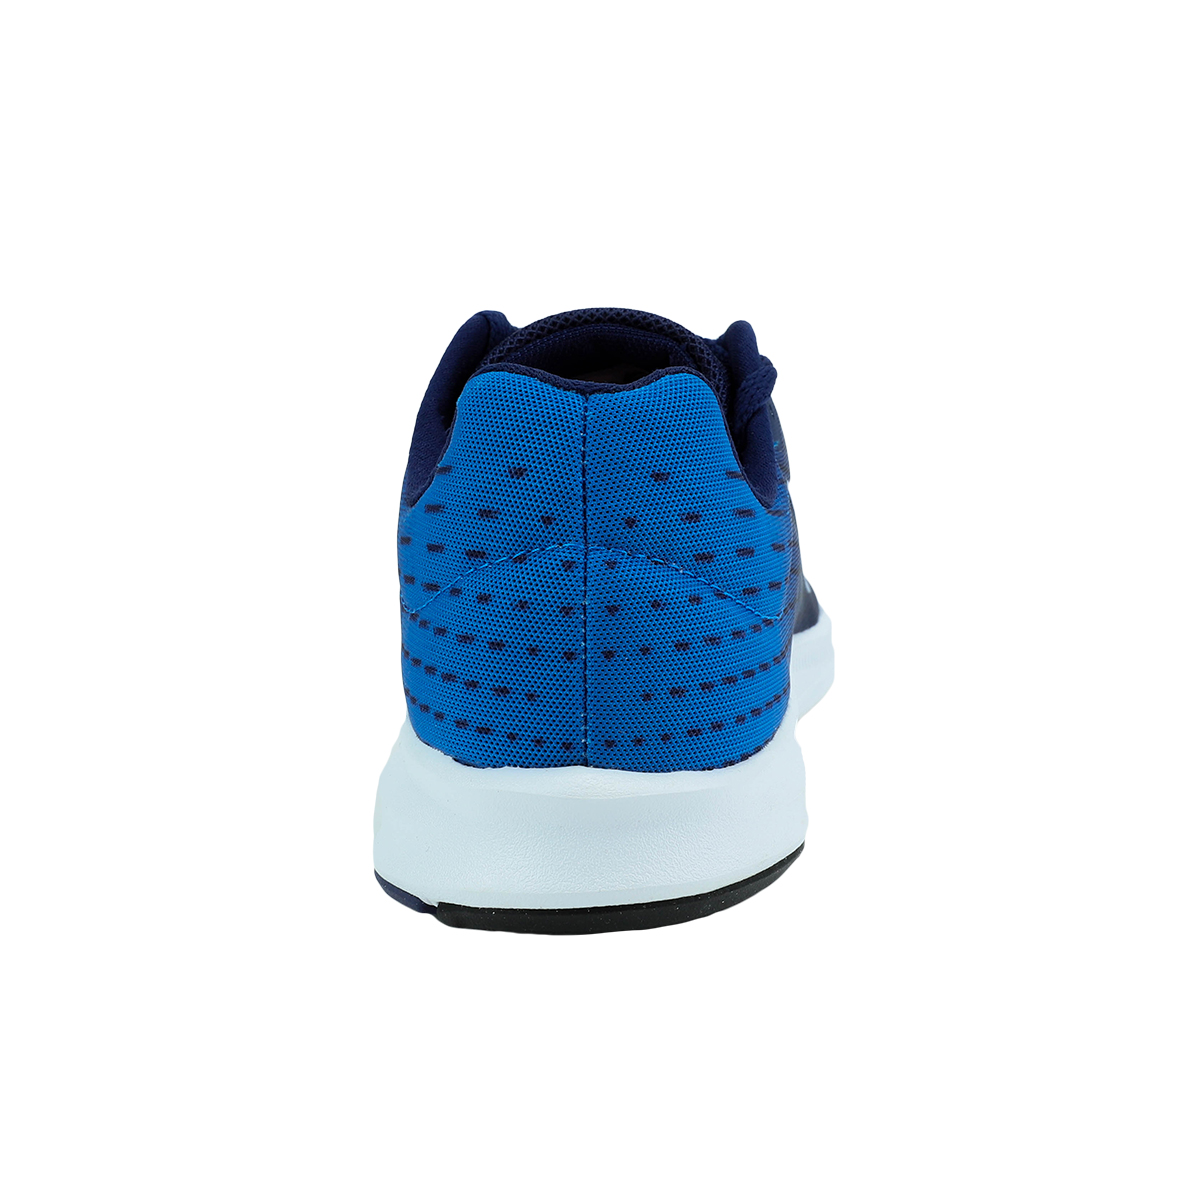 Nike-Men-039-s-Downshifter-8-Running-Shoes thumbnail 12